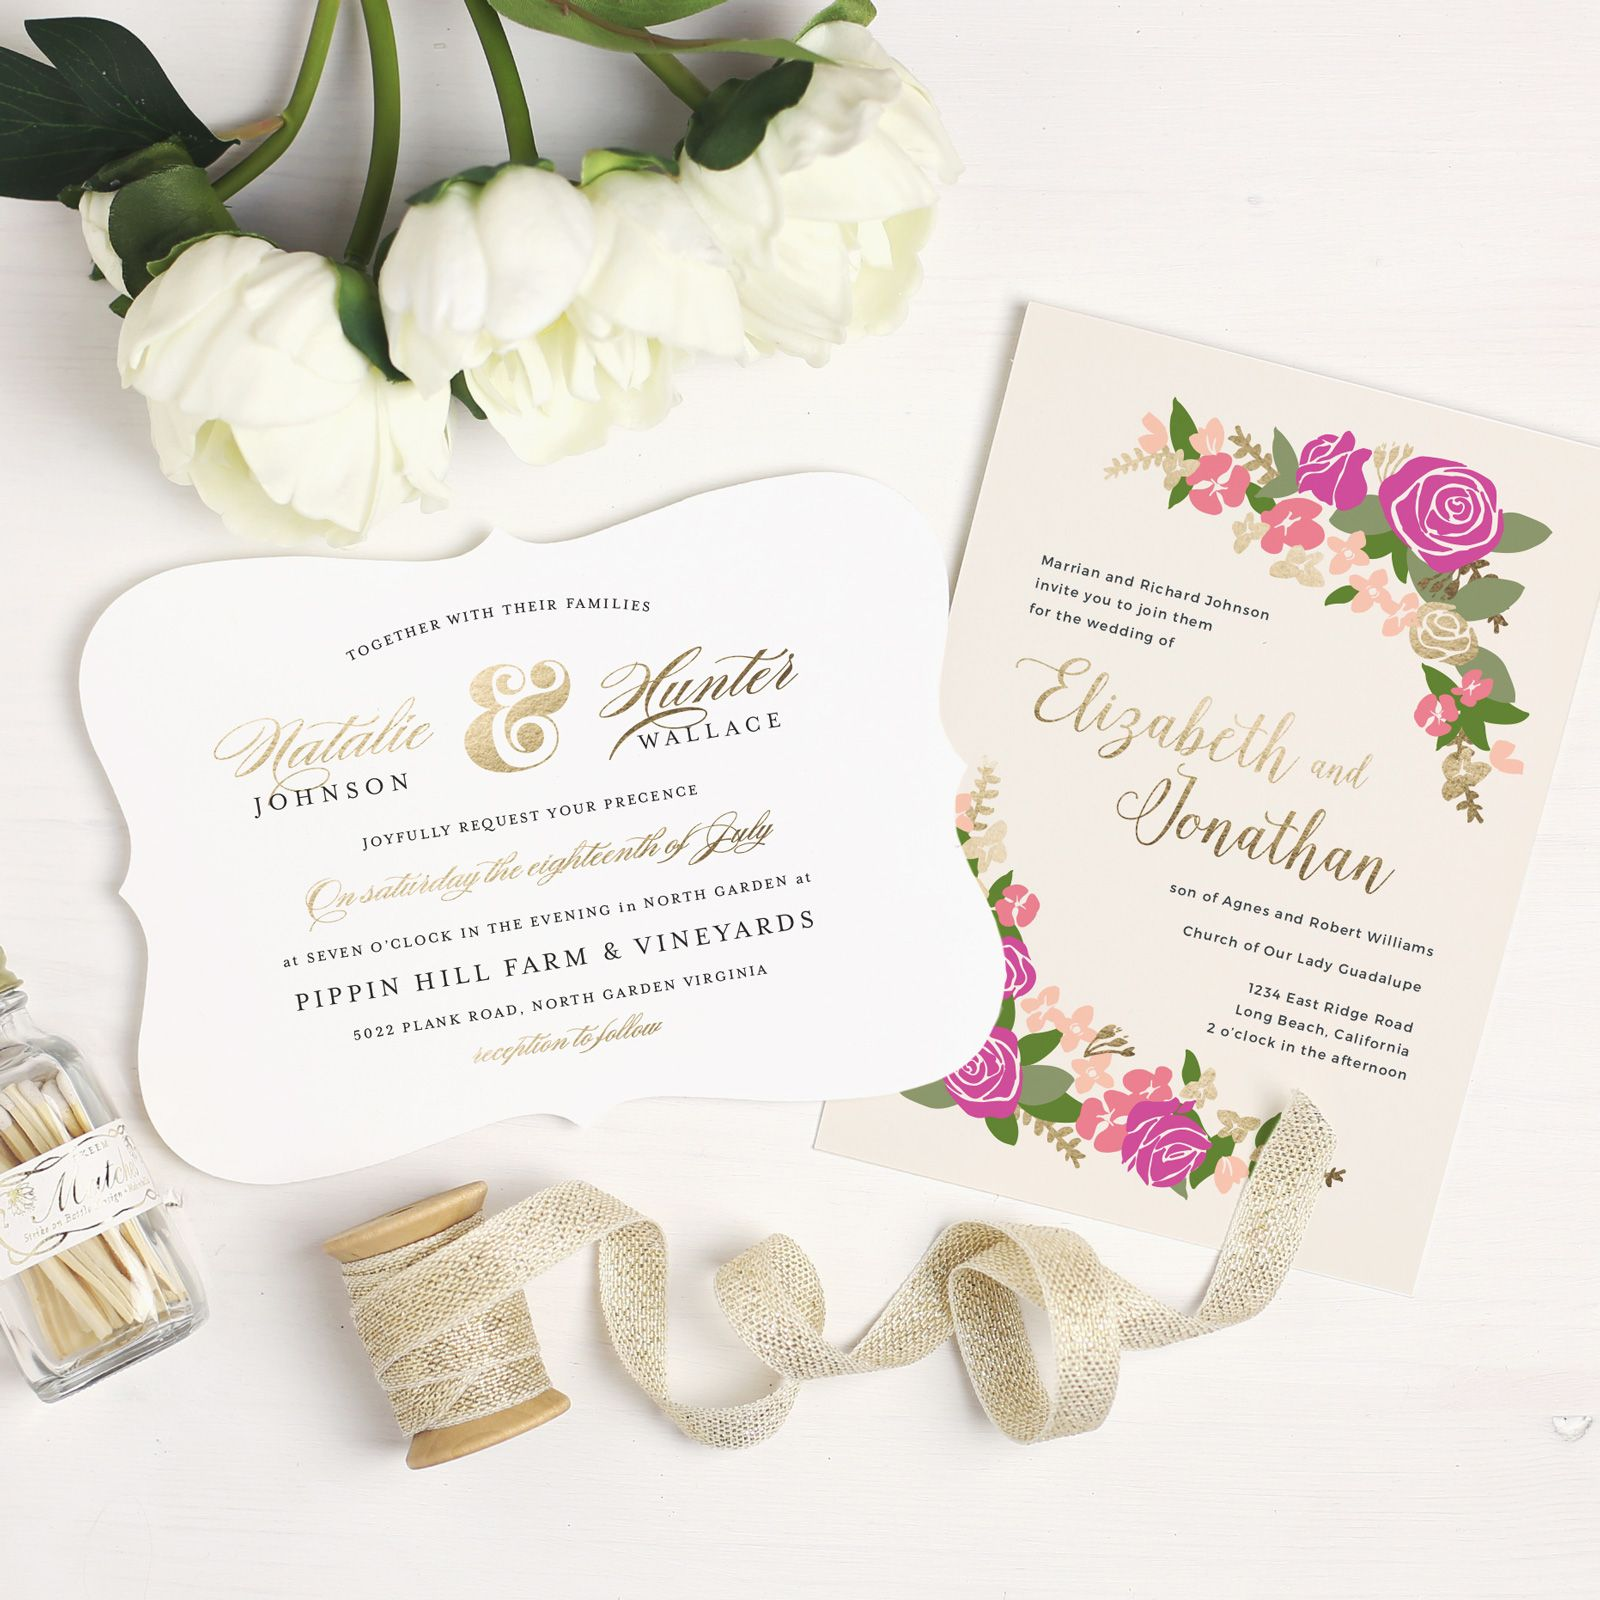 Crafty Ways to Make Your Wedding Invitations Unique | Wedding ...